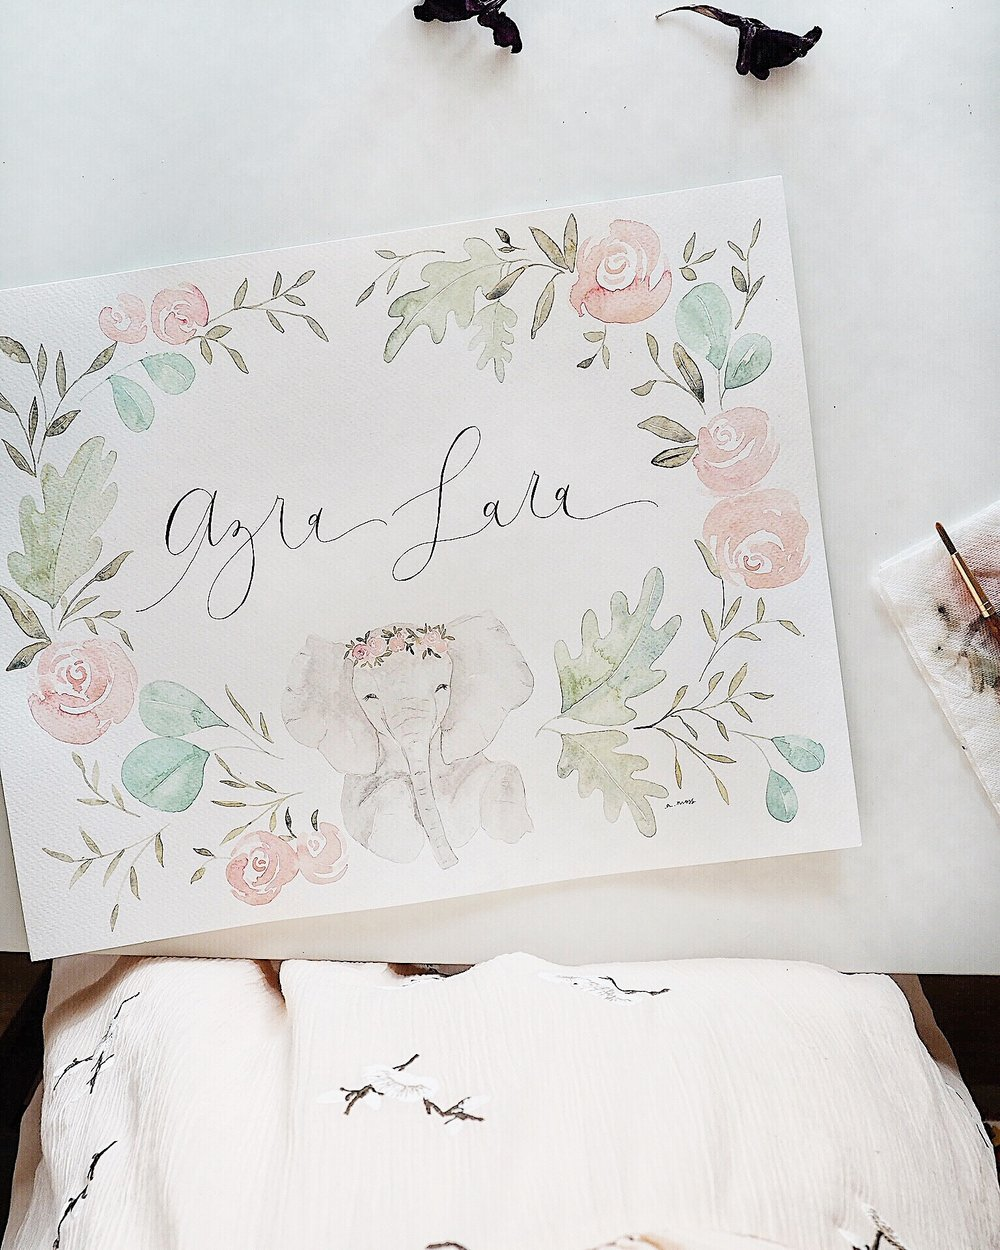 A few weeks ago one of my childhood friends asked if I could create a custom piece for her new baby niece's nursery. She wanted a sweet little animal, some florals, and her niece's name.  THEN another friend asked if I could create a nursery piece for her friend's new little girl. She wanted a sweet, little animal, some florals, and the baby girl's name.  And THEN I received ANOTHER order from a friend asking for a nursery piece for her friend's new baby girl. She wanted a sweet, little animal, some florals, and the baby girl's name.  Sorry, that was kinda repetitive. But you get the point. Baby girl nursery pieces rock!  So I wanted to share some photos of these custom pieces that are new to the shop.  They're one of my favorites to paint right now. Cuz I'm not really sure there's anything cuter than baby animals surrounded by florals?  But anywho, if you're interested in ordering your own, contact me  here .  These little commissions are available in sizes 8x10 and 11x14.  Prices start at $50.  & they're darling in a nursery  xx